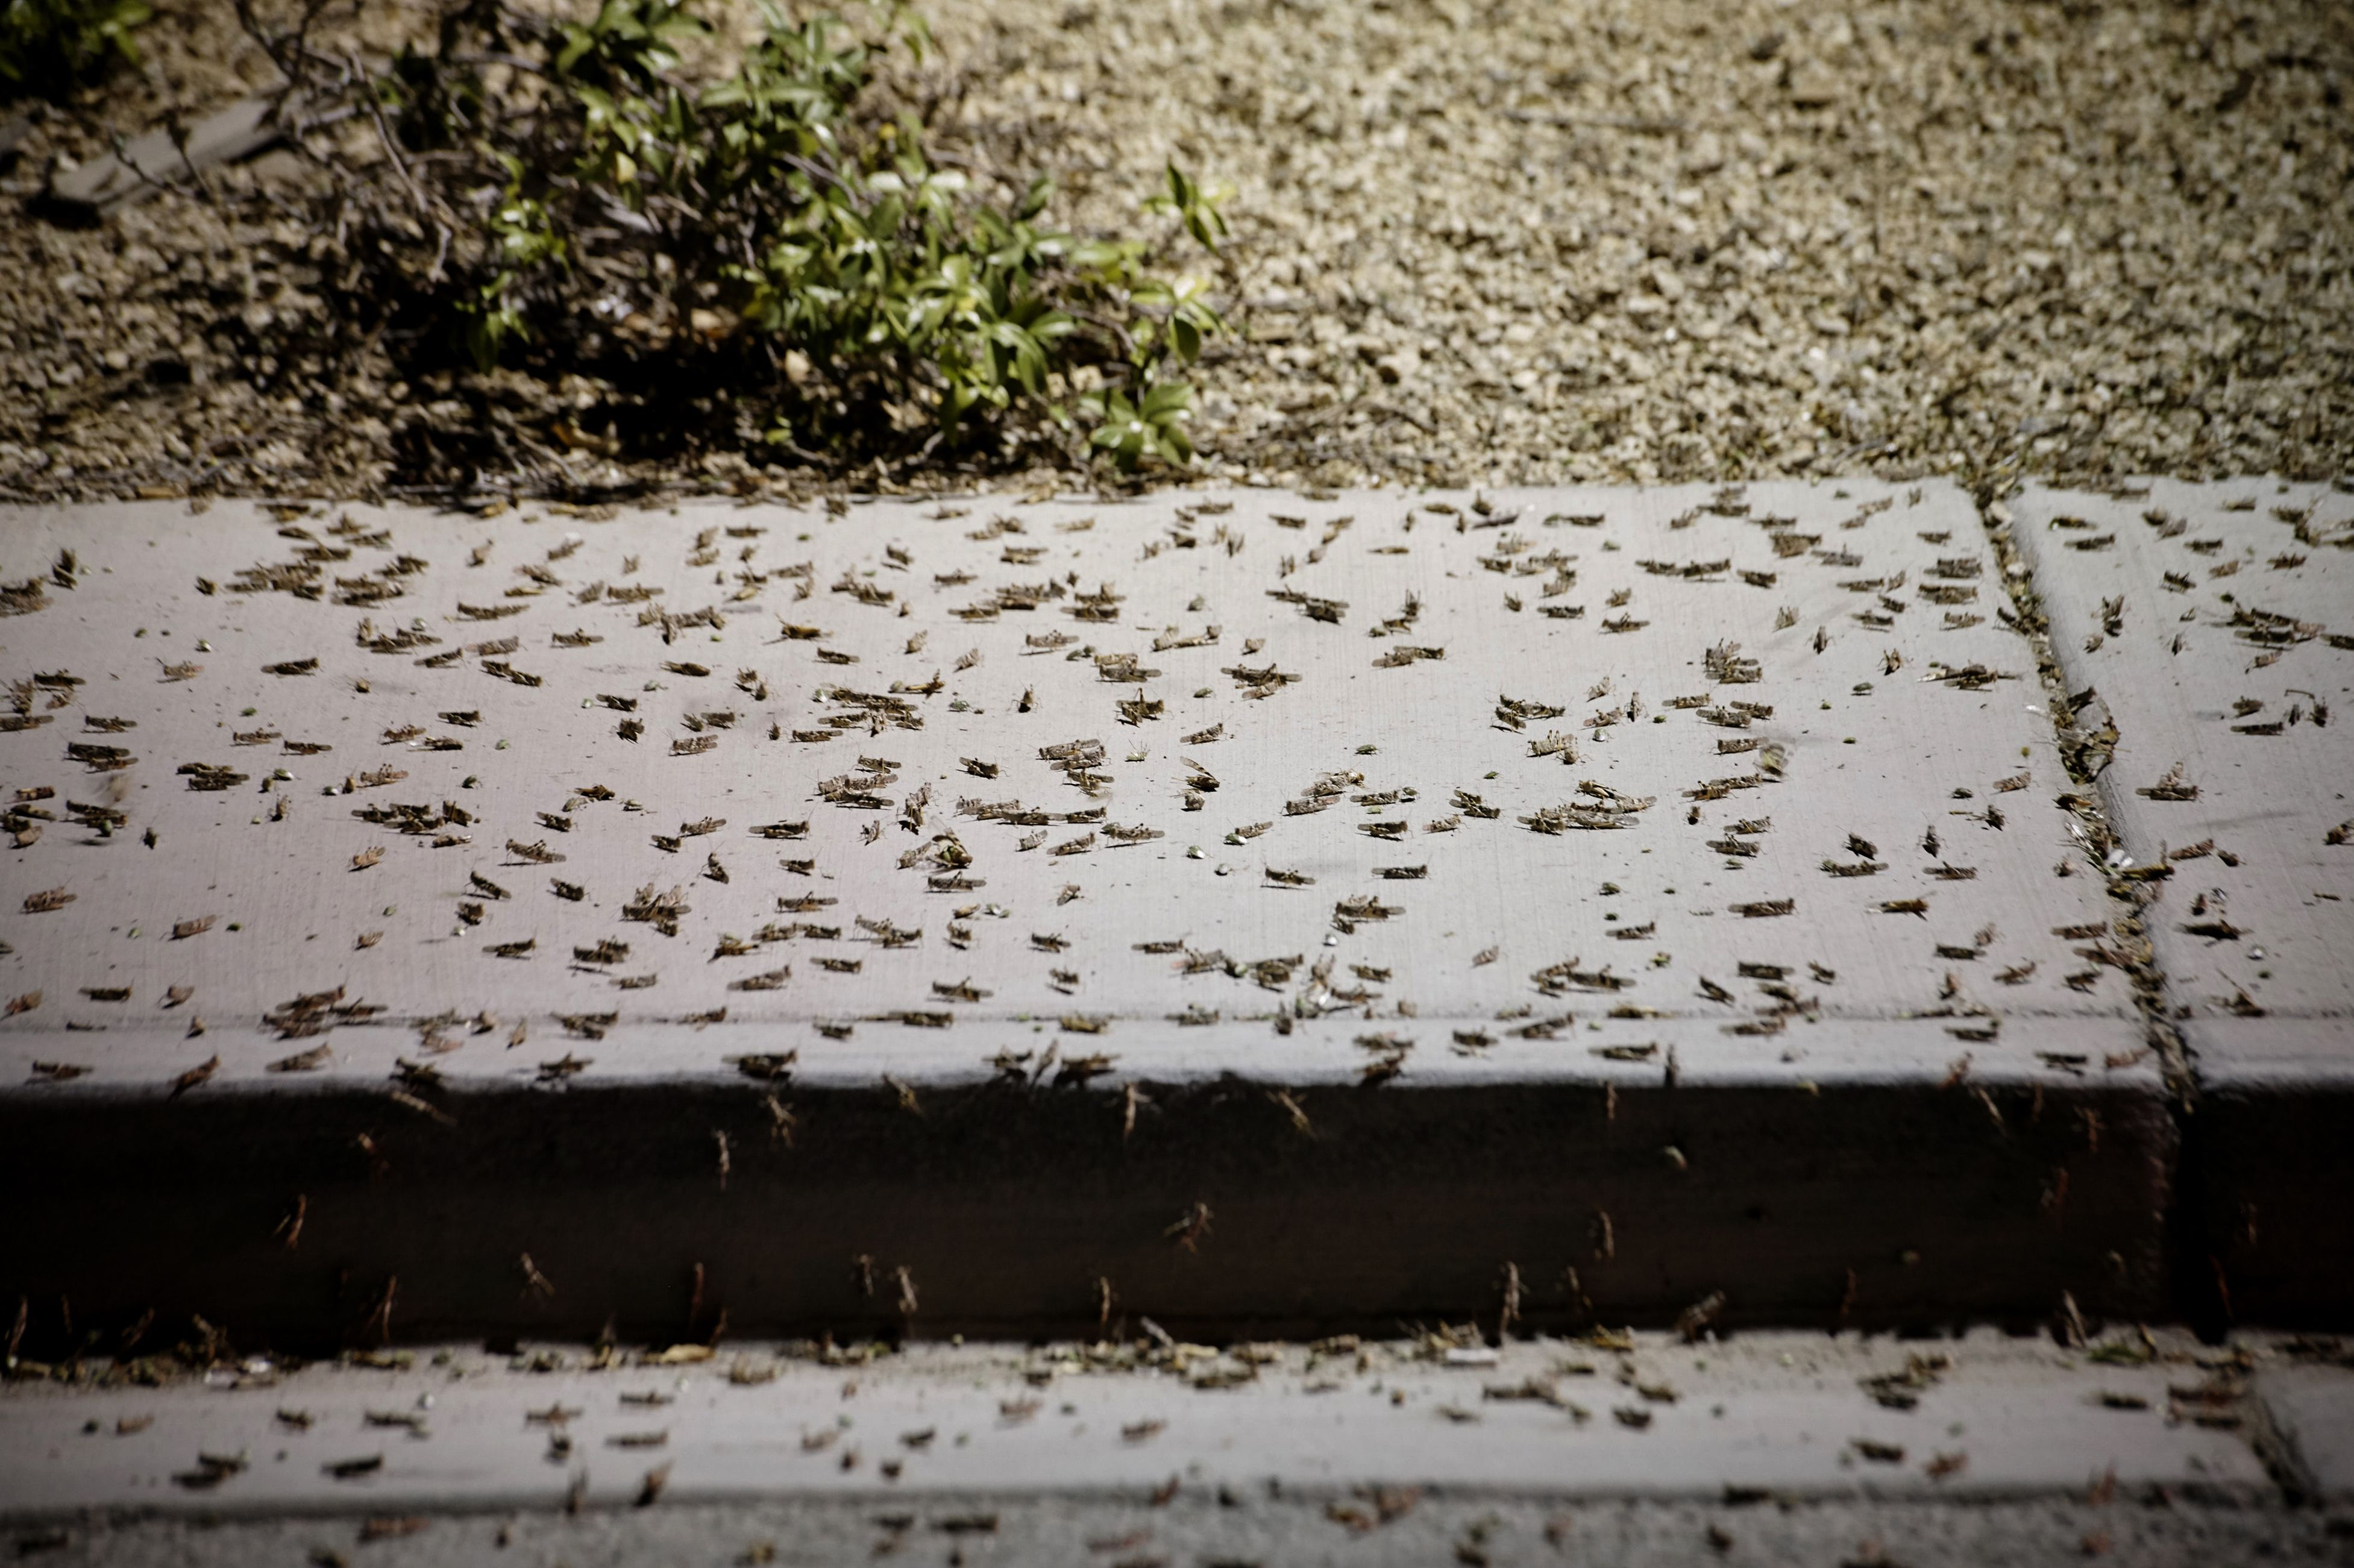 Grasshopper invasion in Las Vegas is so big it shows up on